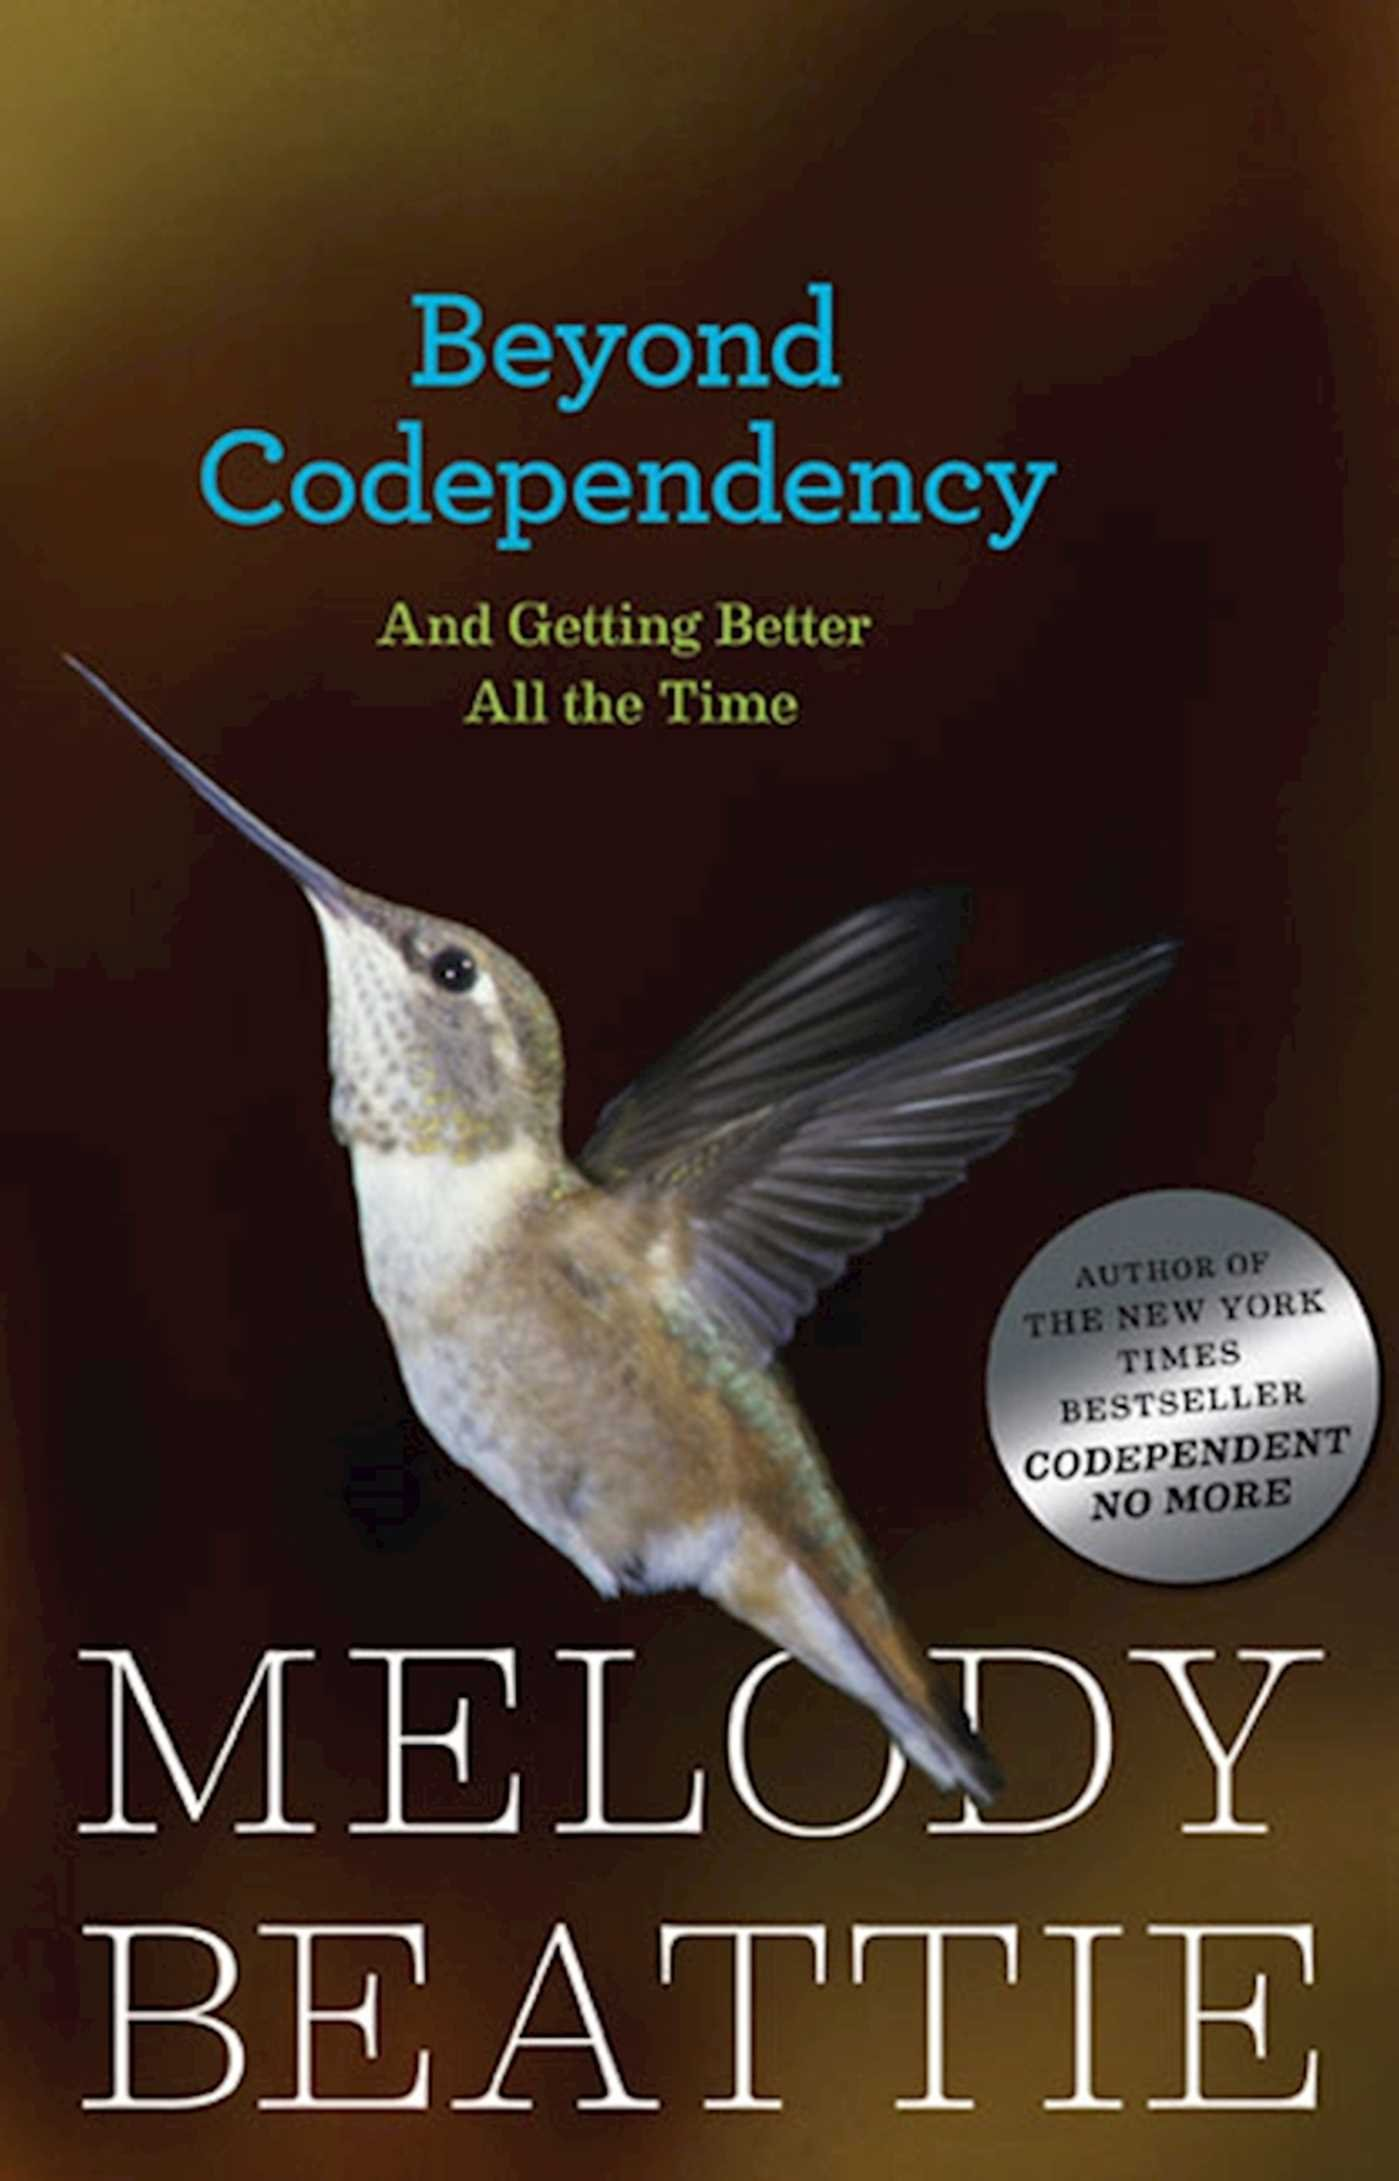 Beyond Codependency: And Getting Better All the Time: Melody Beattie:  9780894865831: Amazon.com: Books